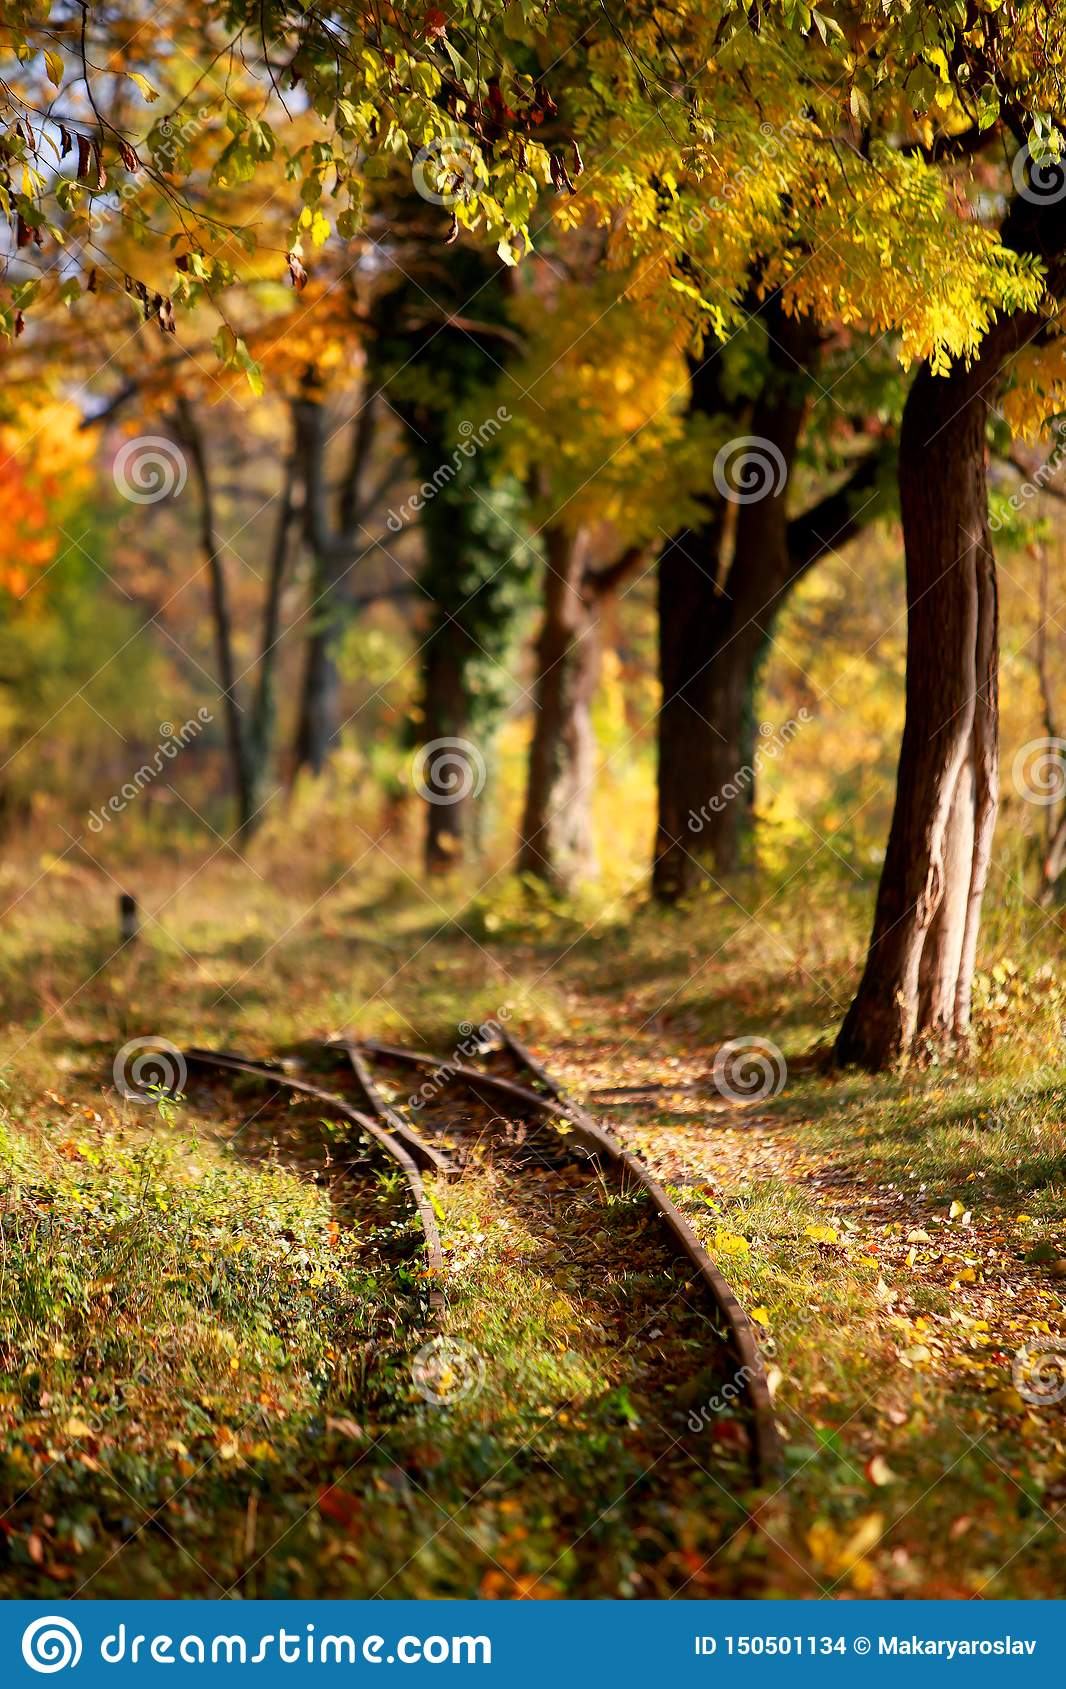 Railway tracks and footpath in the golden forest in autumn